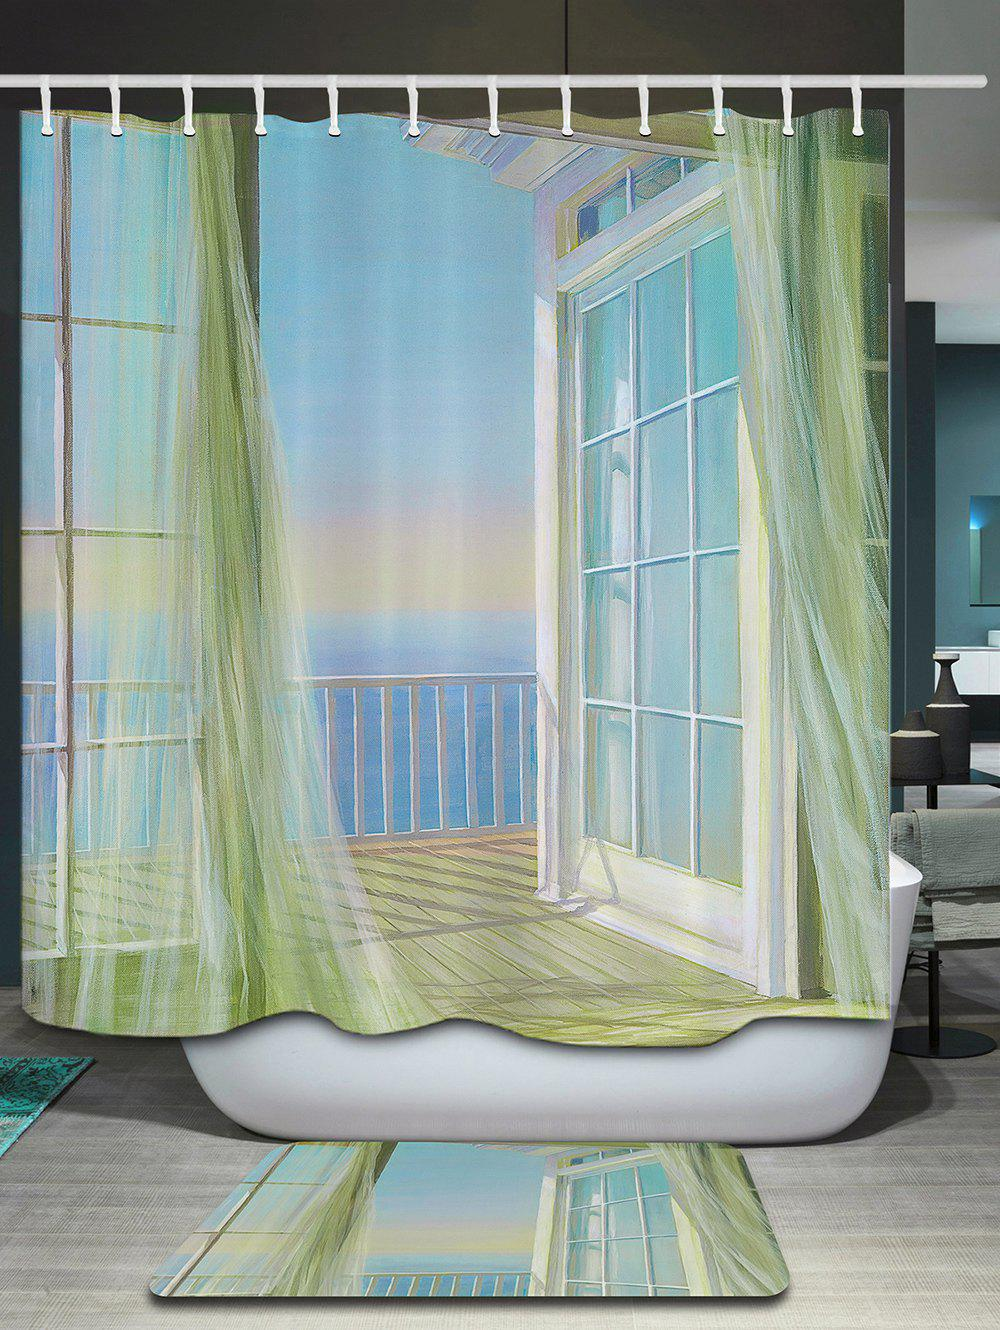 Curtain For Balcony: 2018 Bath Decor Balcony Seascape Print Shower Curtain